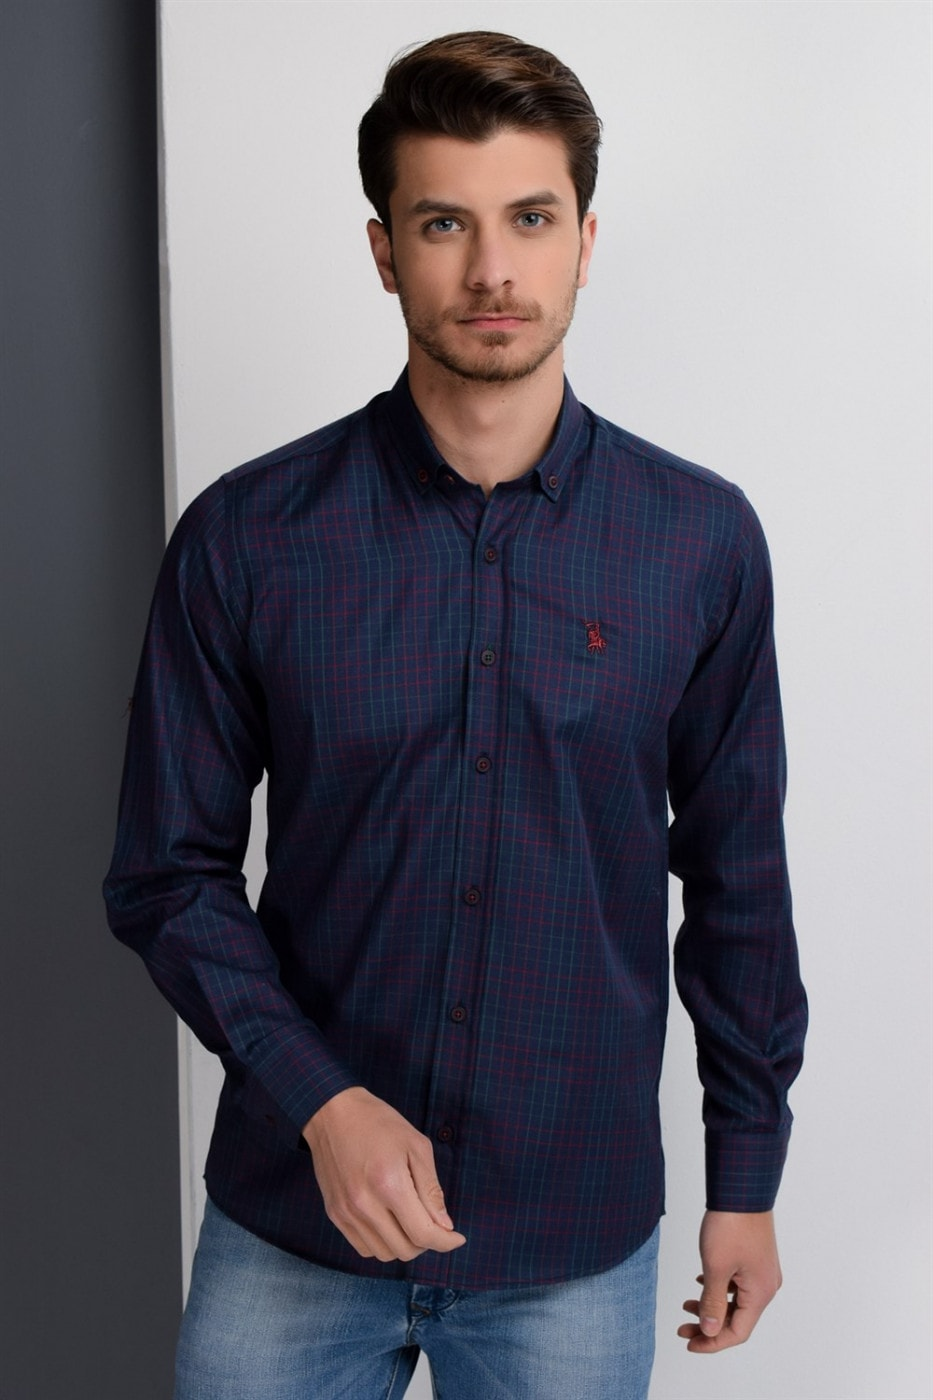 G650 DEWBERRY MEN's SHIRT-LACİVERT- BURGUNDY